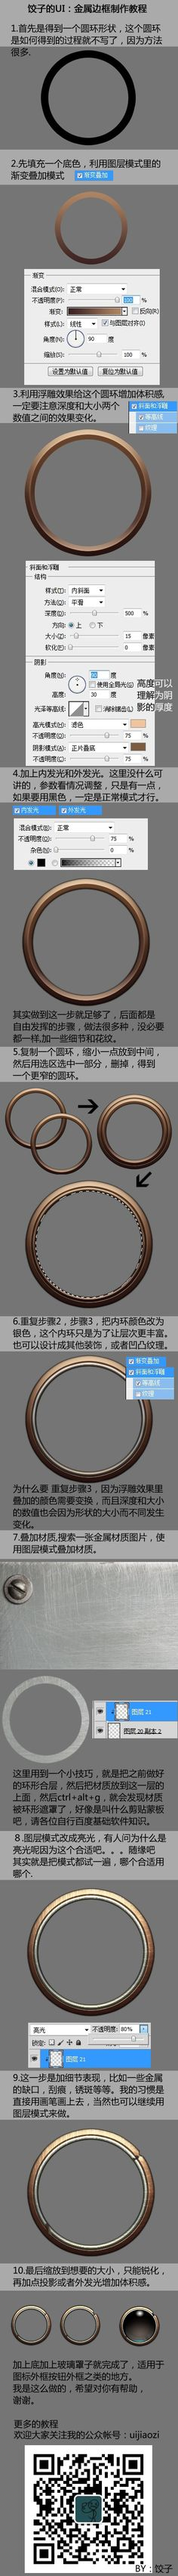 金属质感边框简易教程 |GAMEUI- ... Brushed metal ring painting tutorial how to | Create your own roleplaying game books w/ RPG Bard: www.rpgbard.com | Pathfinder PFRPG Dungeons and Dragons ADND DND OGL d20 OSR OSRIC Warhammer 40000 40k Fantasy Roleplay WFRP Star Wars Exalted World of Darkness Dragon Age Iron Kingdoms Fate Core System Savage Worlds Shadowrun Dungeon Crawl Classics DCC Call of Cthulhu CoC Basic Role Playing BRP Traveller Battletech The One Ring TOR fantasy science fiction horror